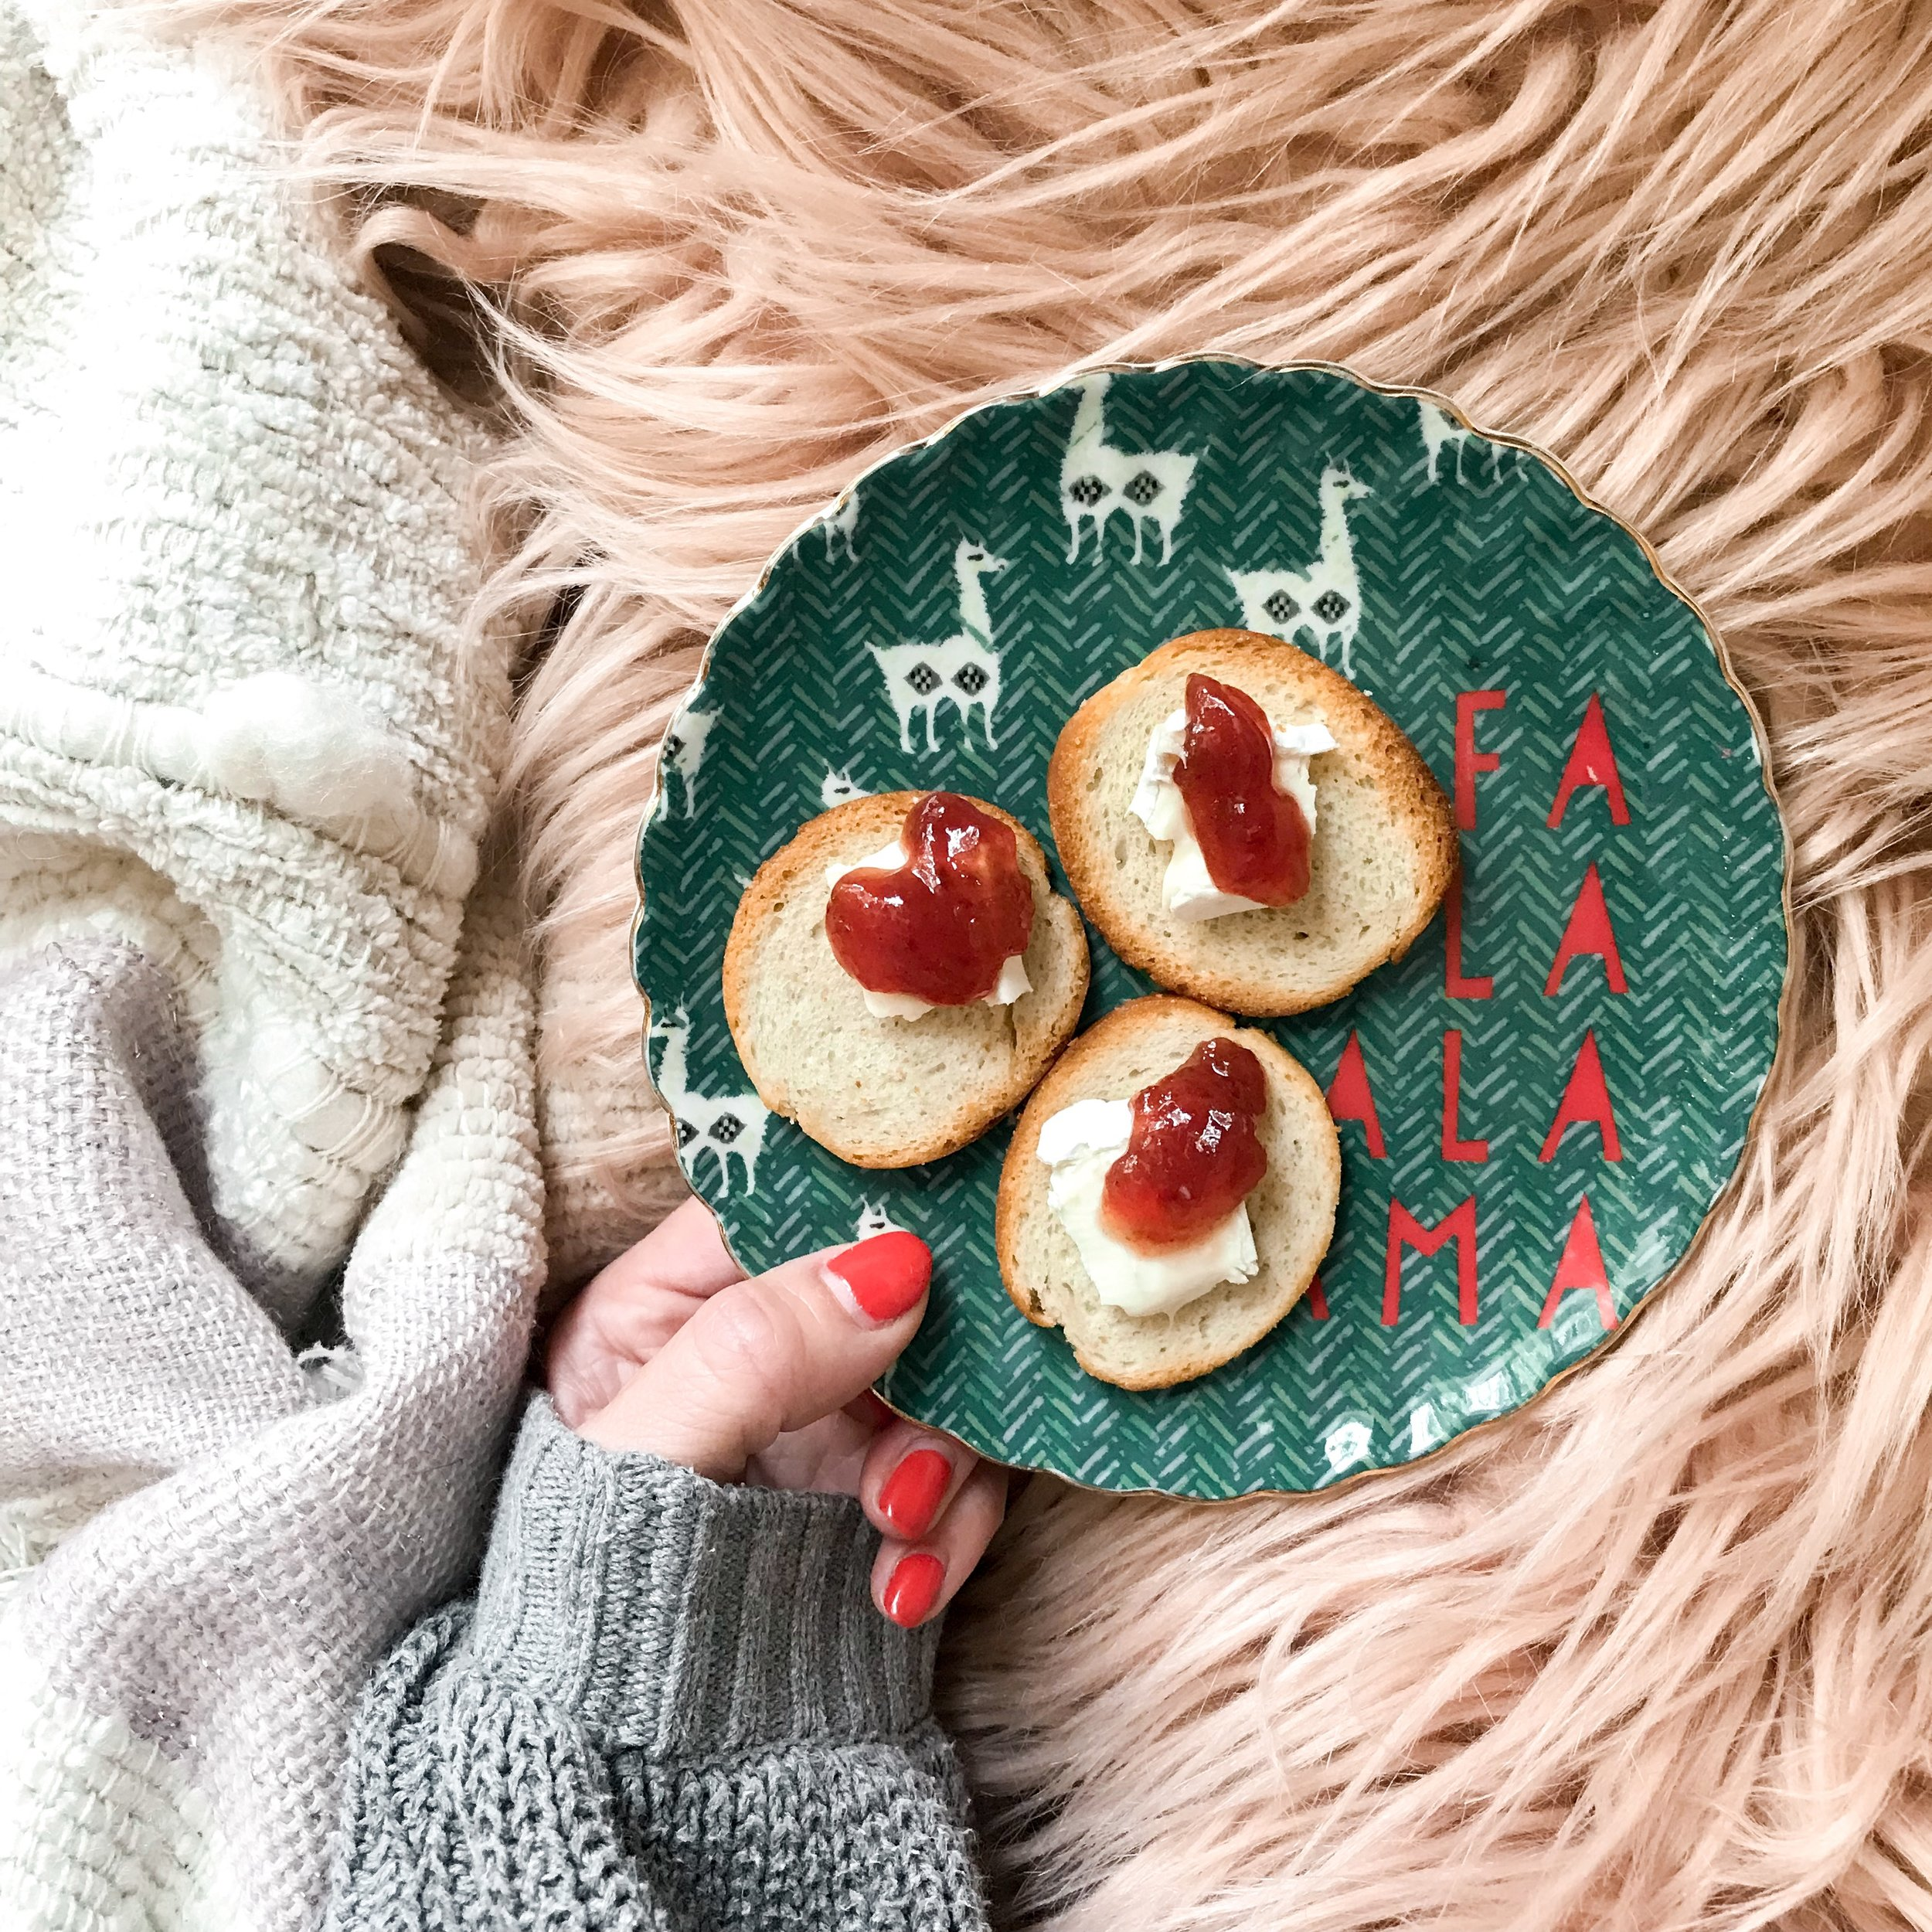 A wonderful Holiday treat: Bagel crisps + creamy brie + Trader Joe's sugar plum jam.  Favorite holiday plates from Anthropologie last season,  but these are cute too!